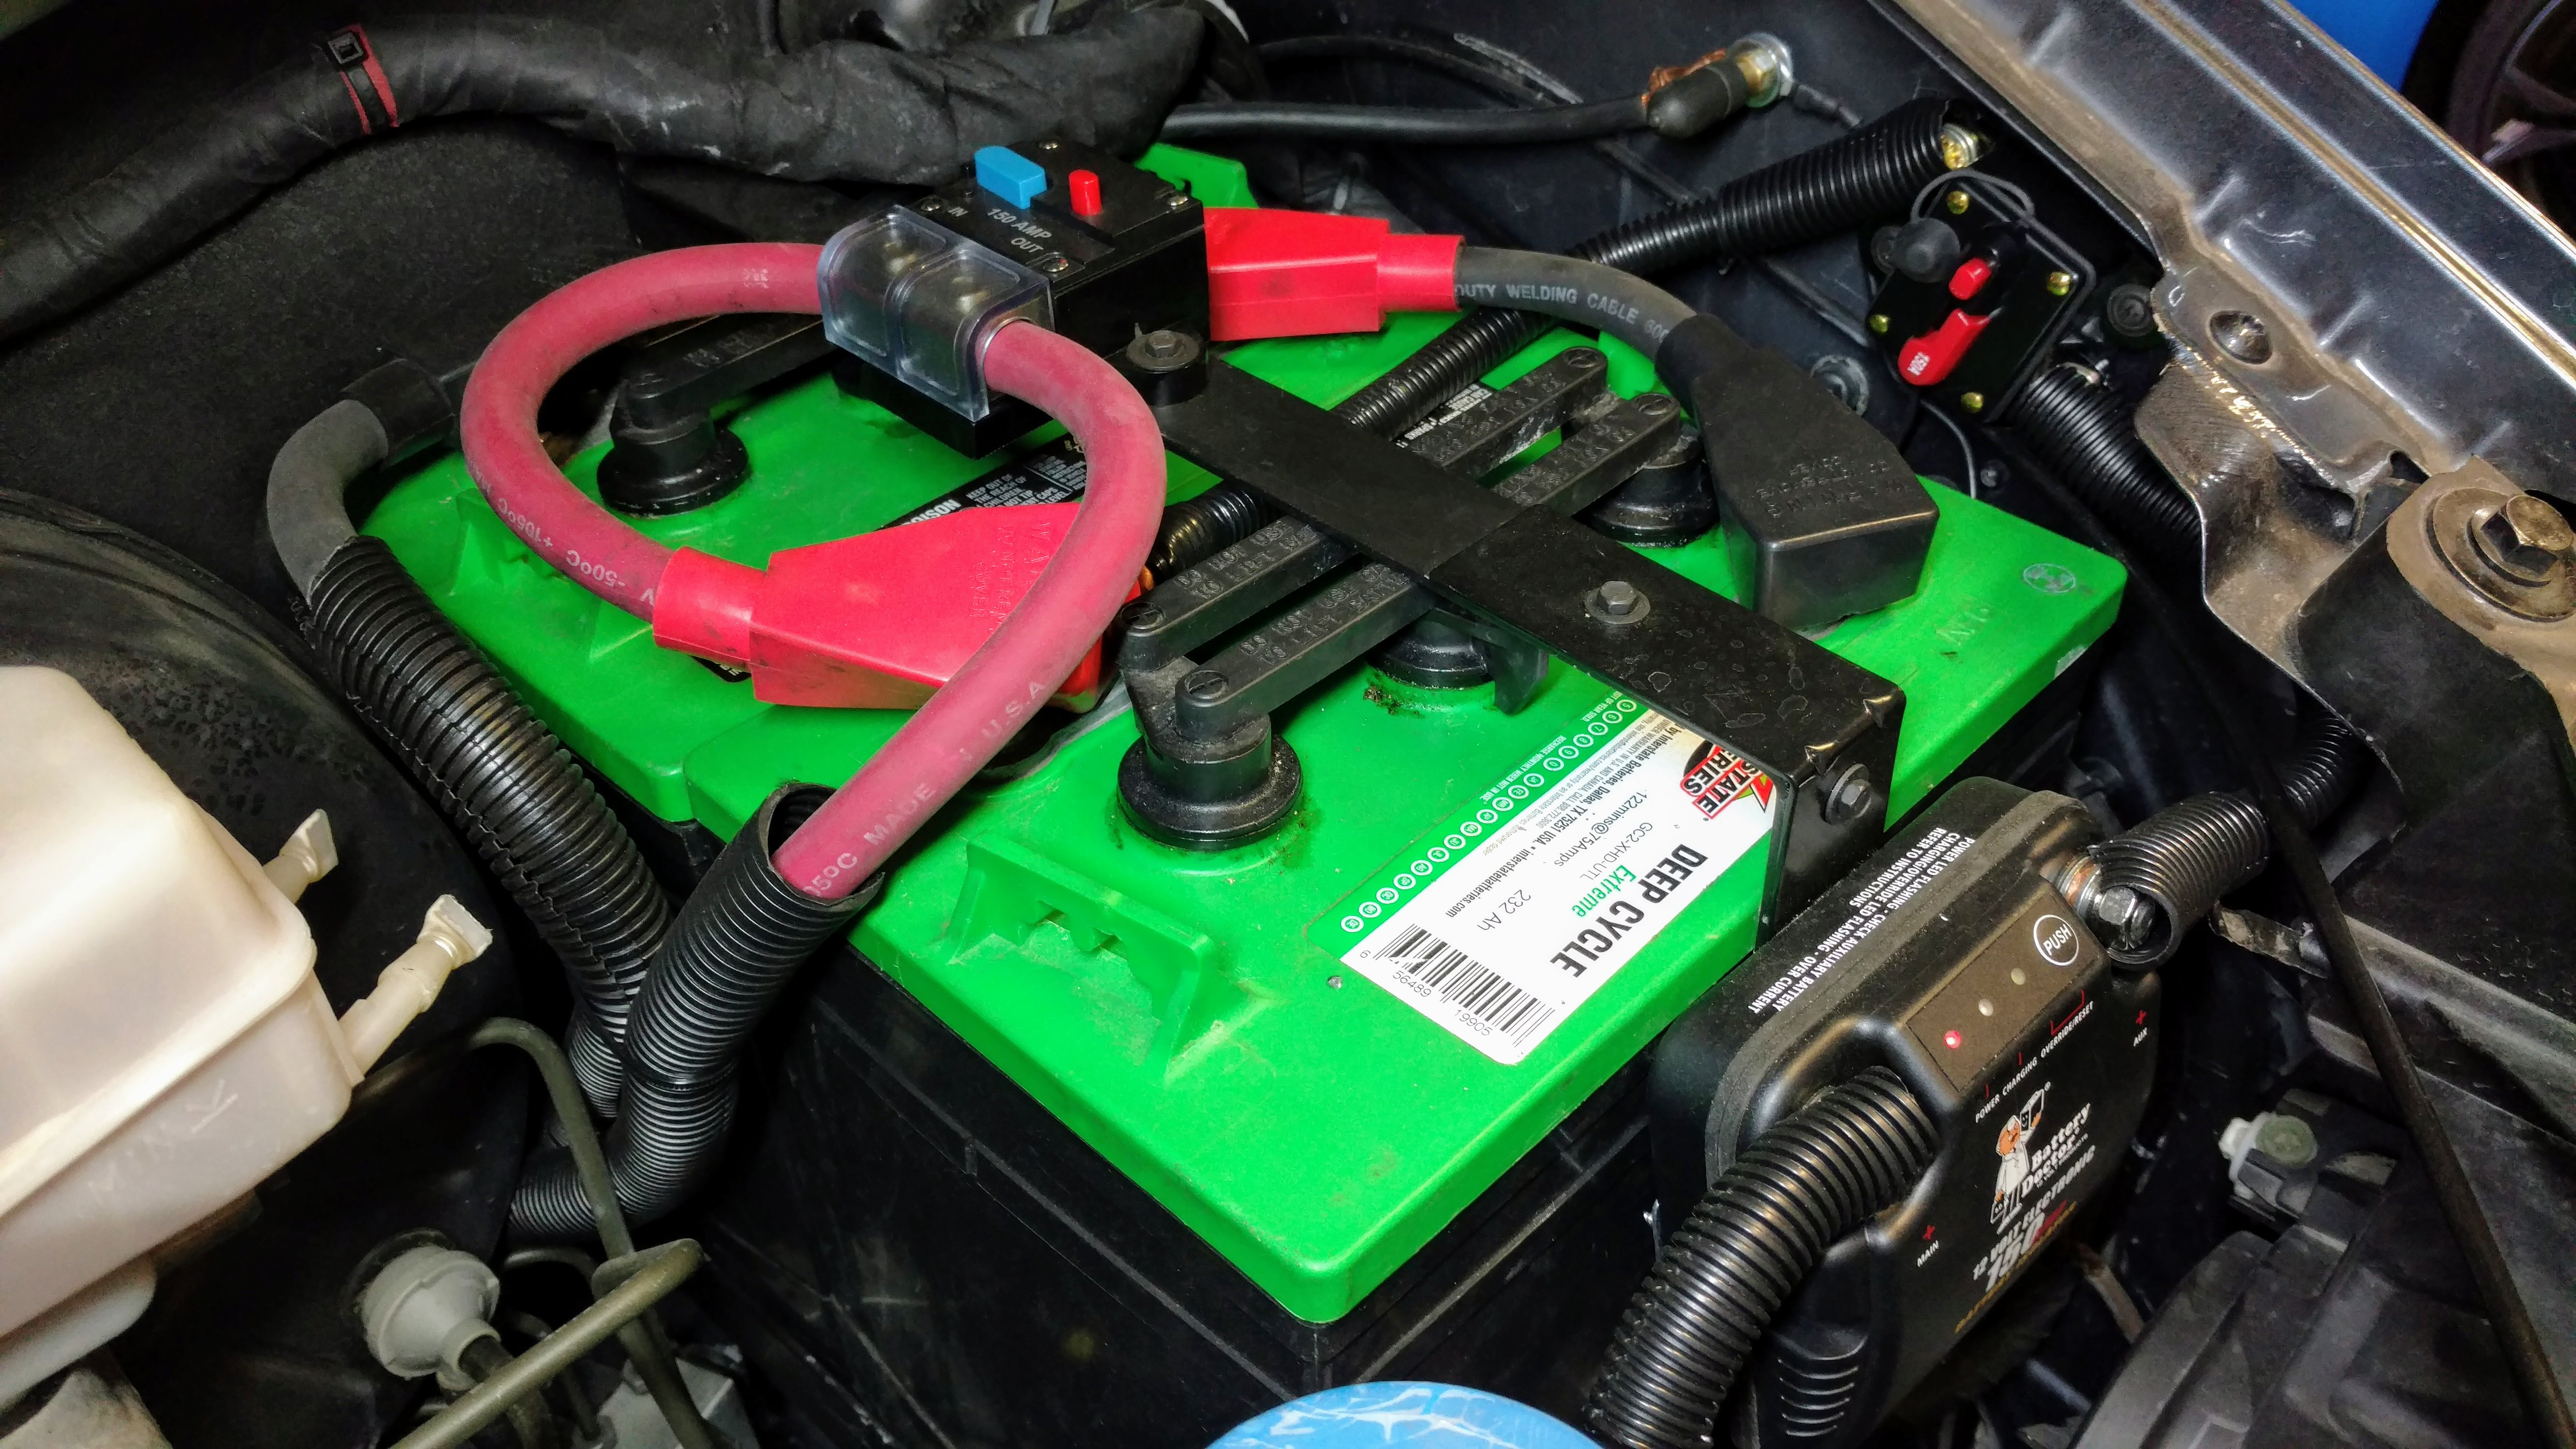 Dual 6 Volt Underhood Battery Tray Sprinter Van. I Used A 150a Breaker Instead Of Fuse For Main Circuit Protection On The Positive Cable. Wiring. Battery Doctor Disconnect Wiring Diagram At Scoala.co